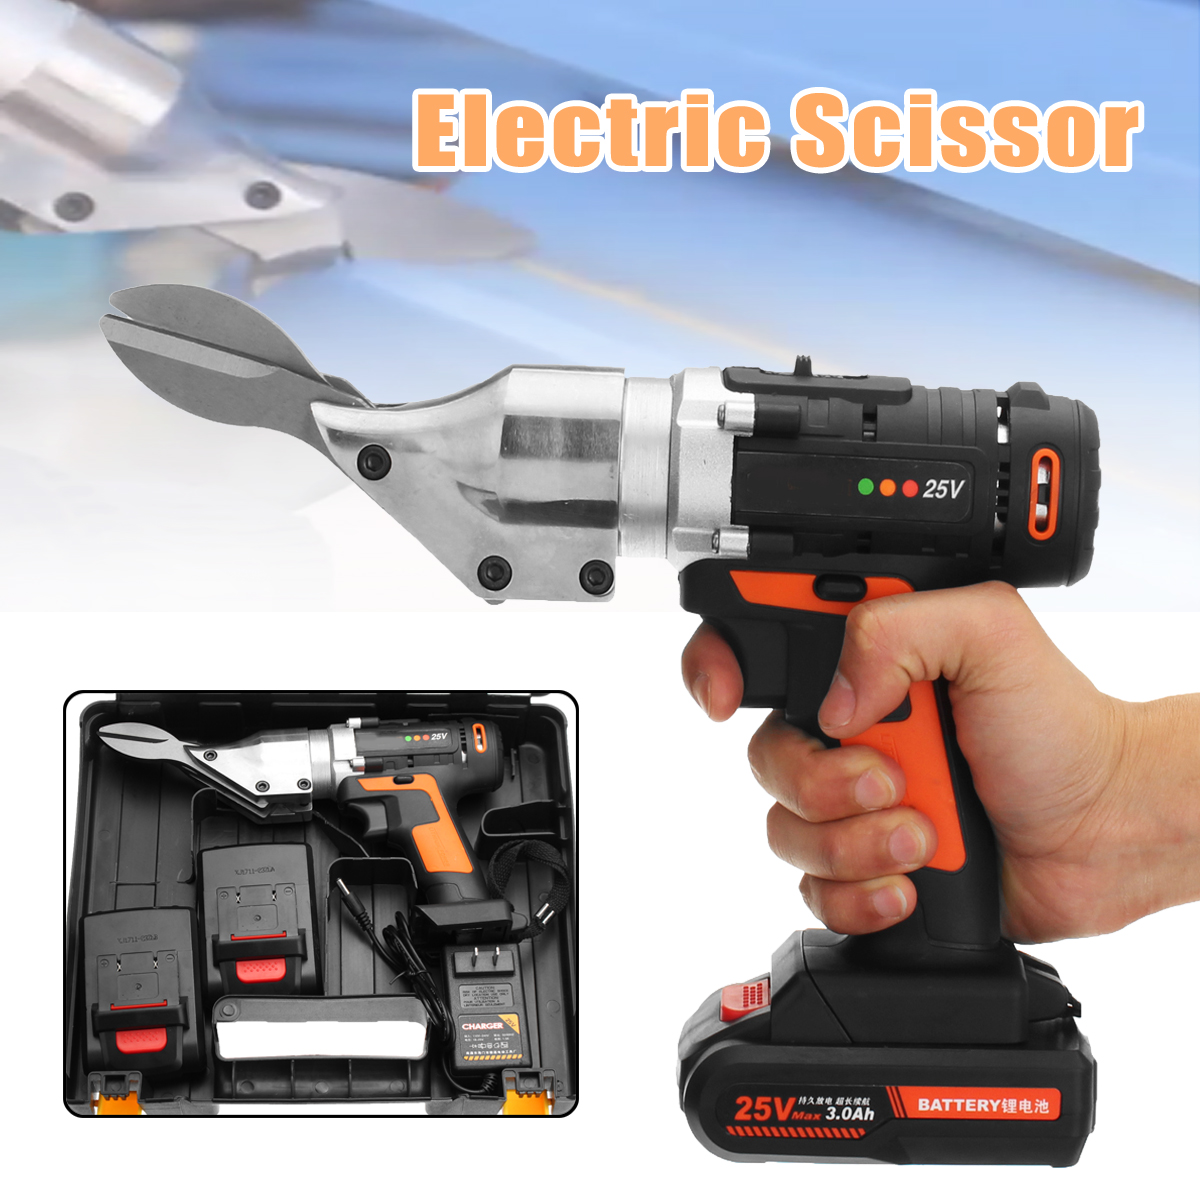 25V Li-ion Cordless Electric Scissor Metal Sheet Shear Cutter Scissors Rechargeable 2 Battery Rotating Head Power Tool